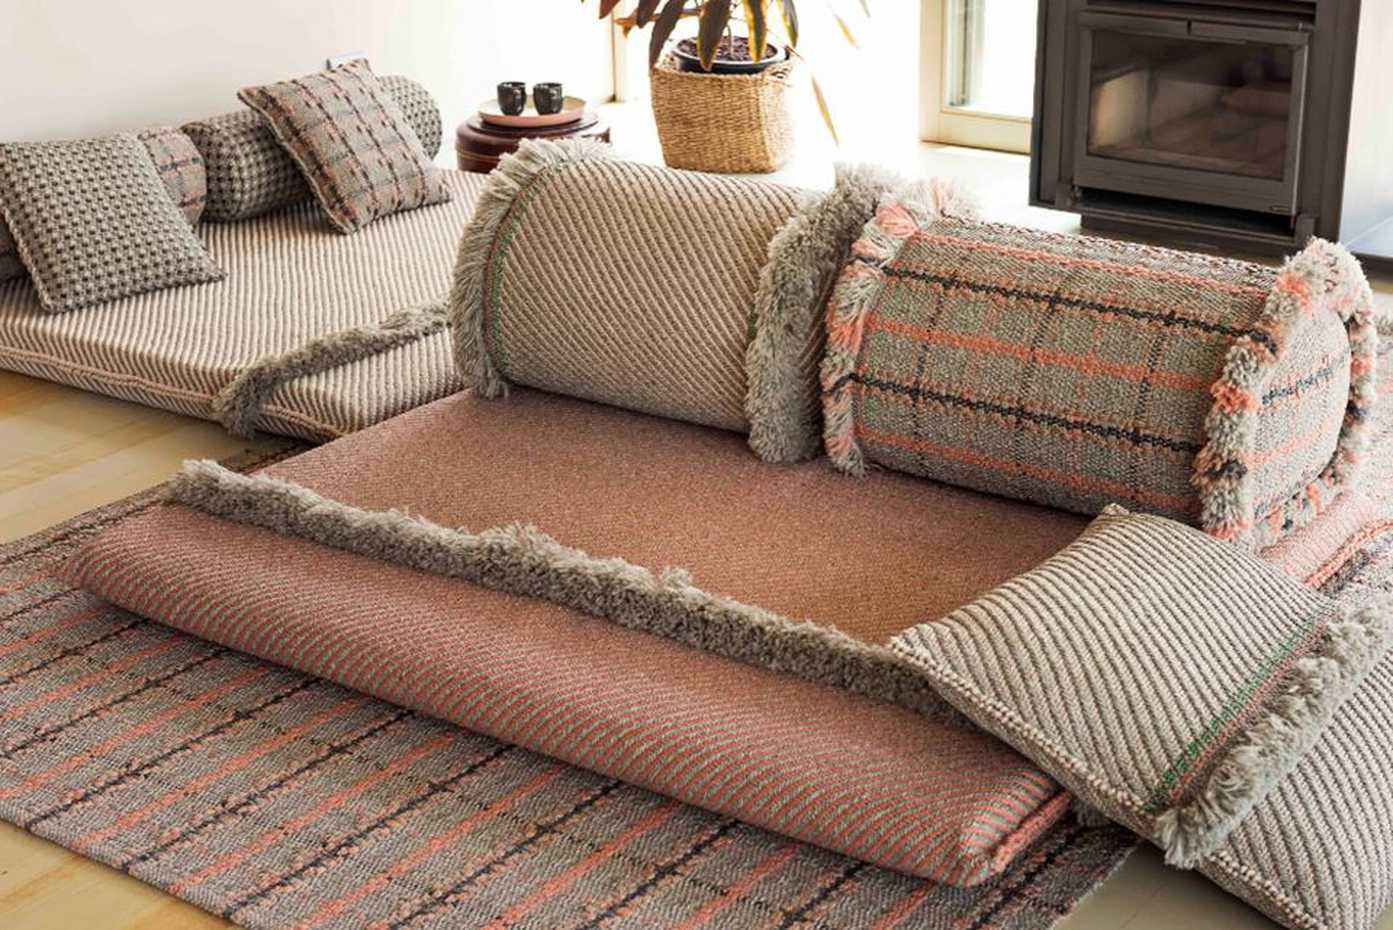 Garden Layers by Gan Rugs product image 3